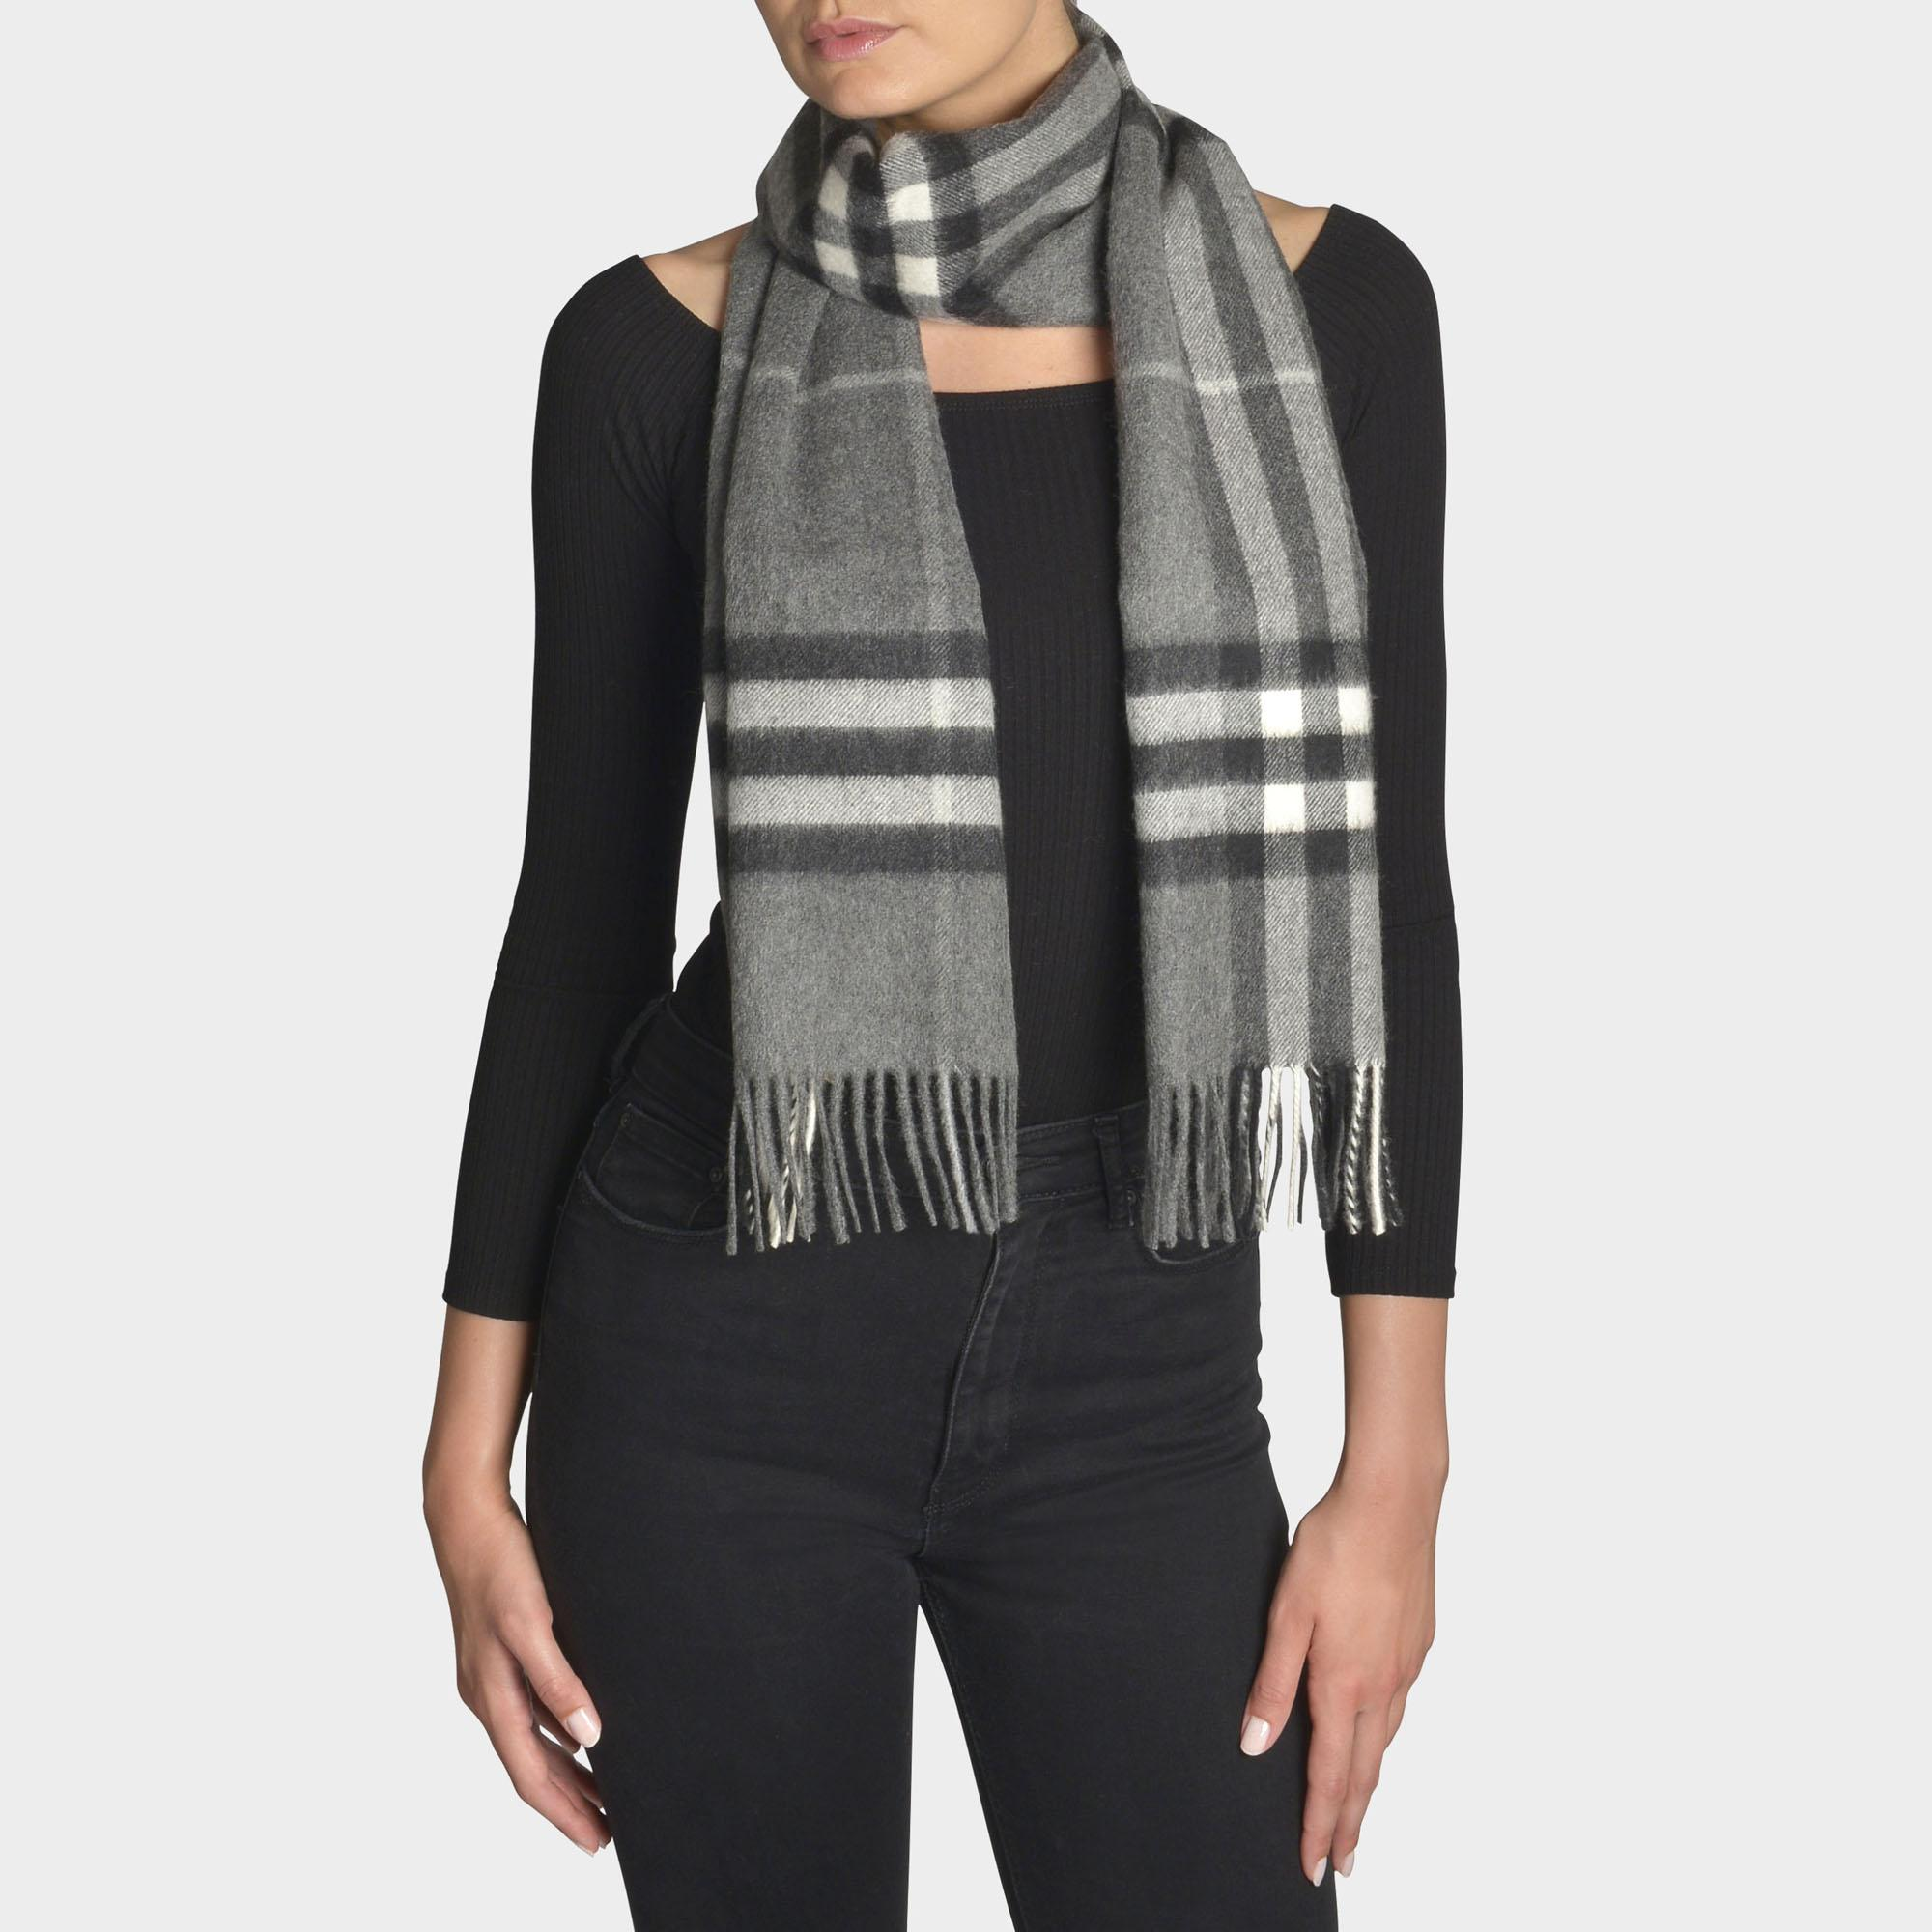 Burberry Giant Icon Scarf In Grey Cashmere in Gray - Lyst 1af2c1b0b8c50